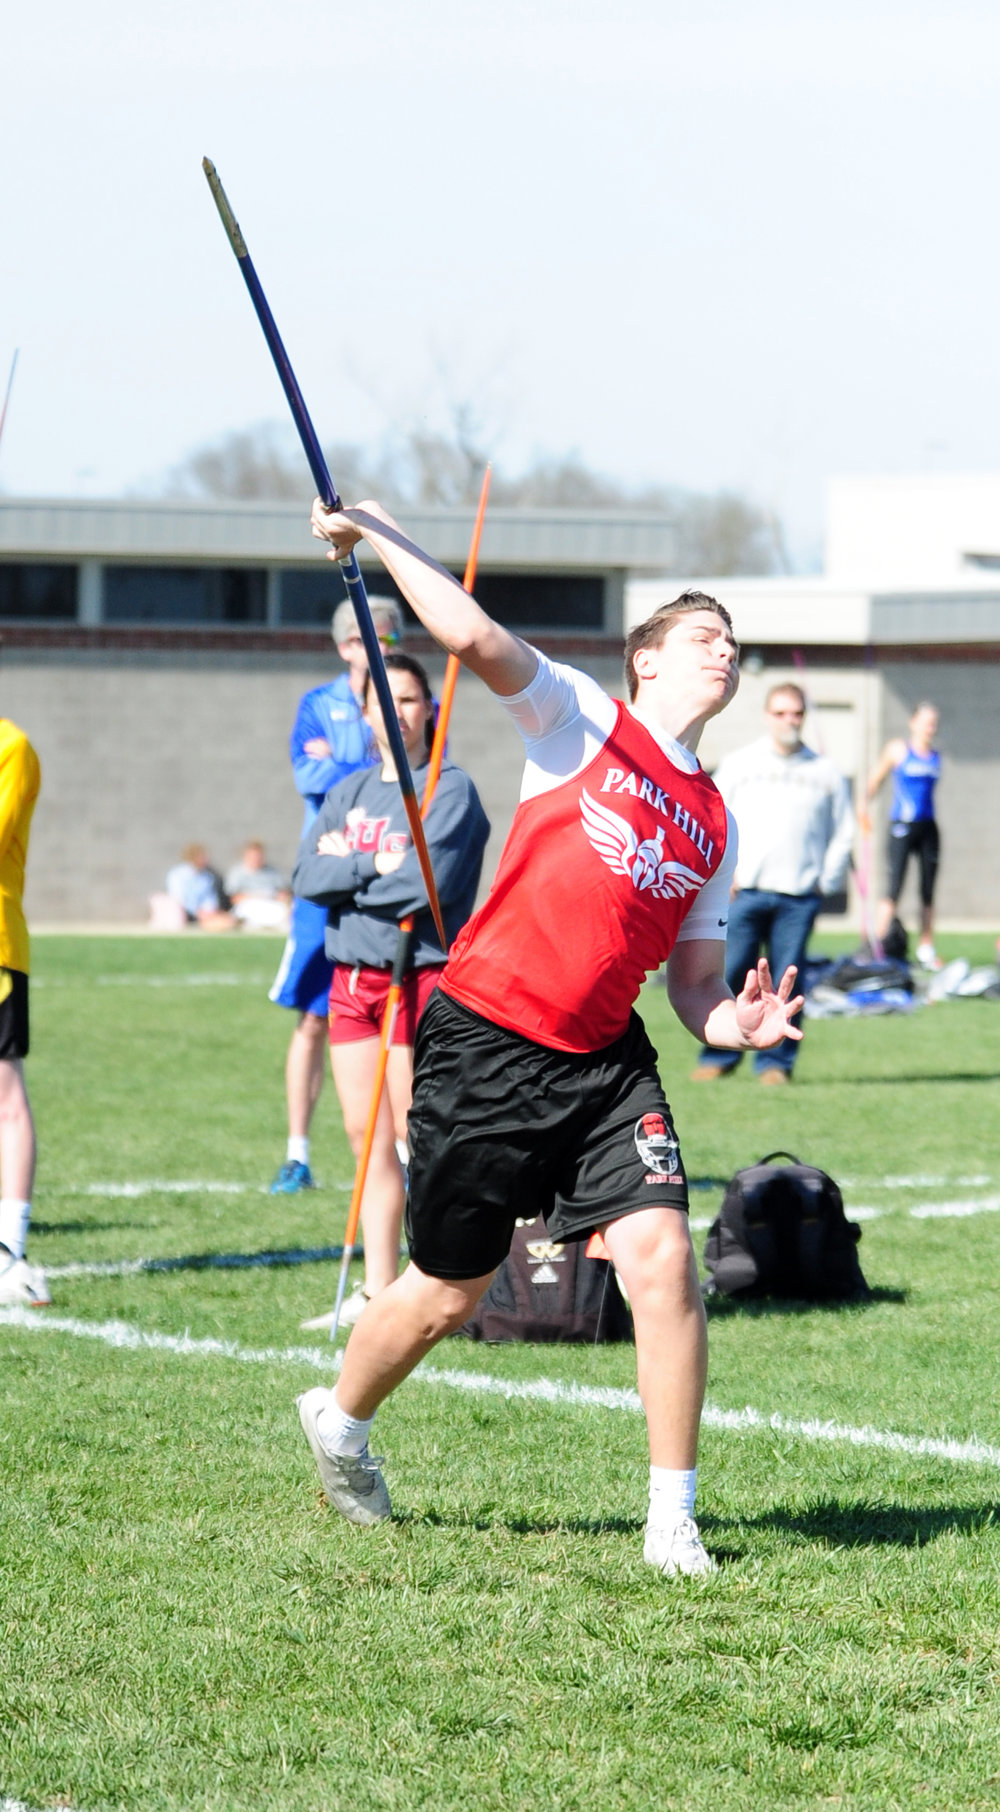 NICK INGRAM/Citizen photo Park Hill Kolby Heineriksen throws the javelin in the Jerry Crews Invitational on Friday, April 7 at North Kansas City District Activities Complex in Kansas City, Mo.